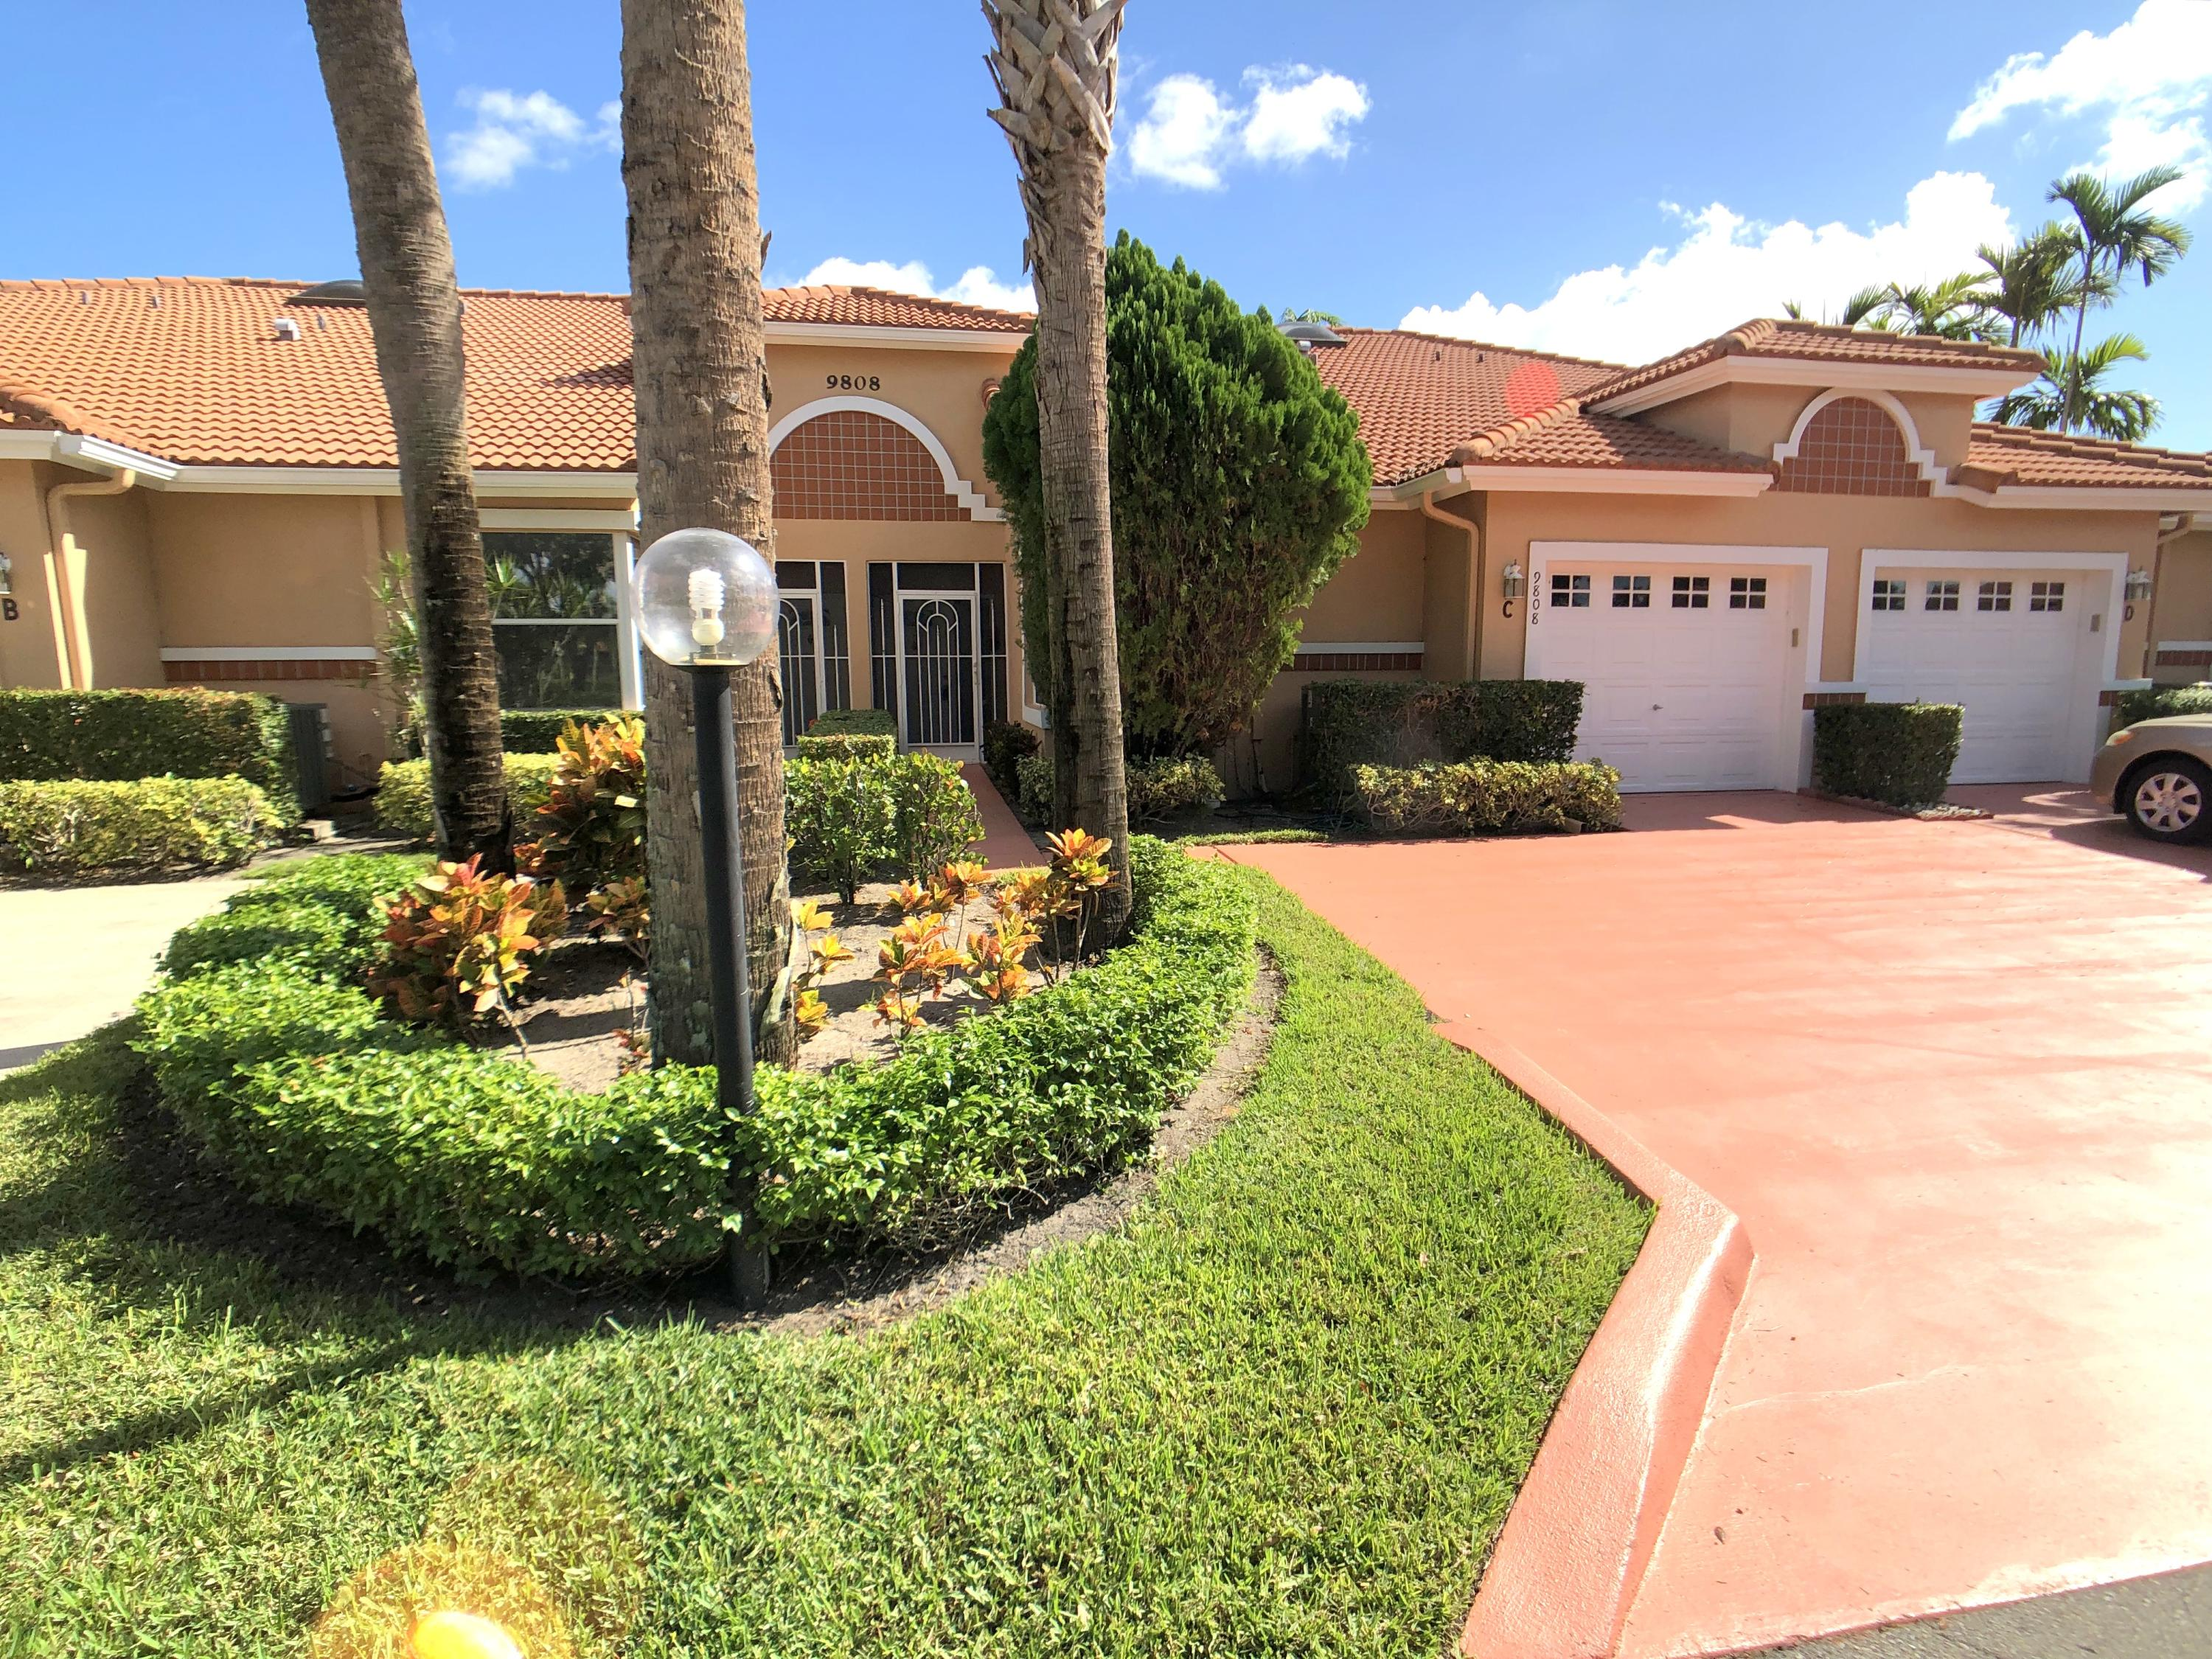 9808 Summerbrook Terrace Boynton Beach 33437 - photo